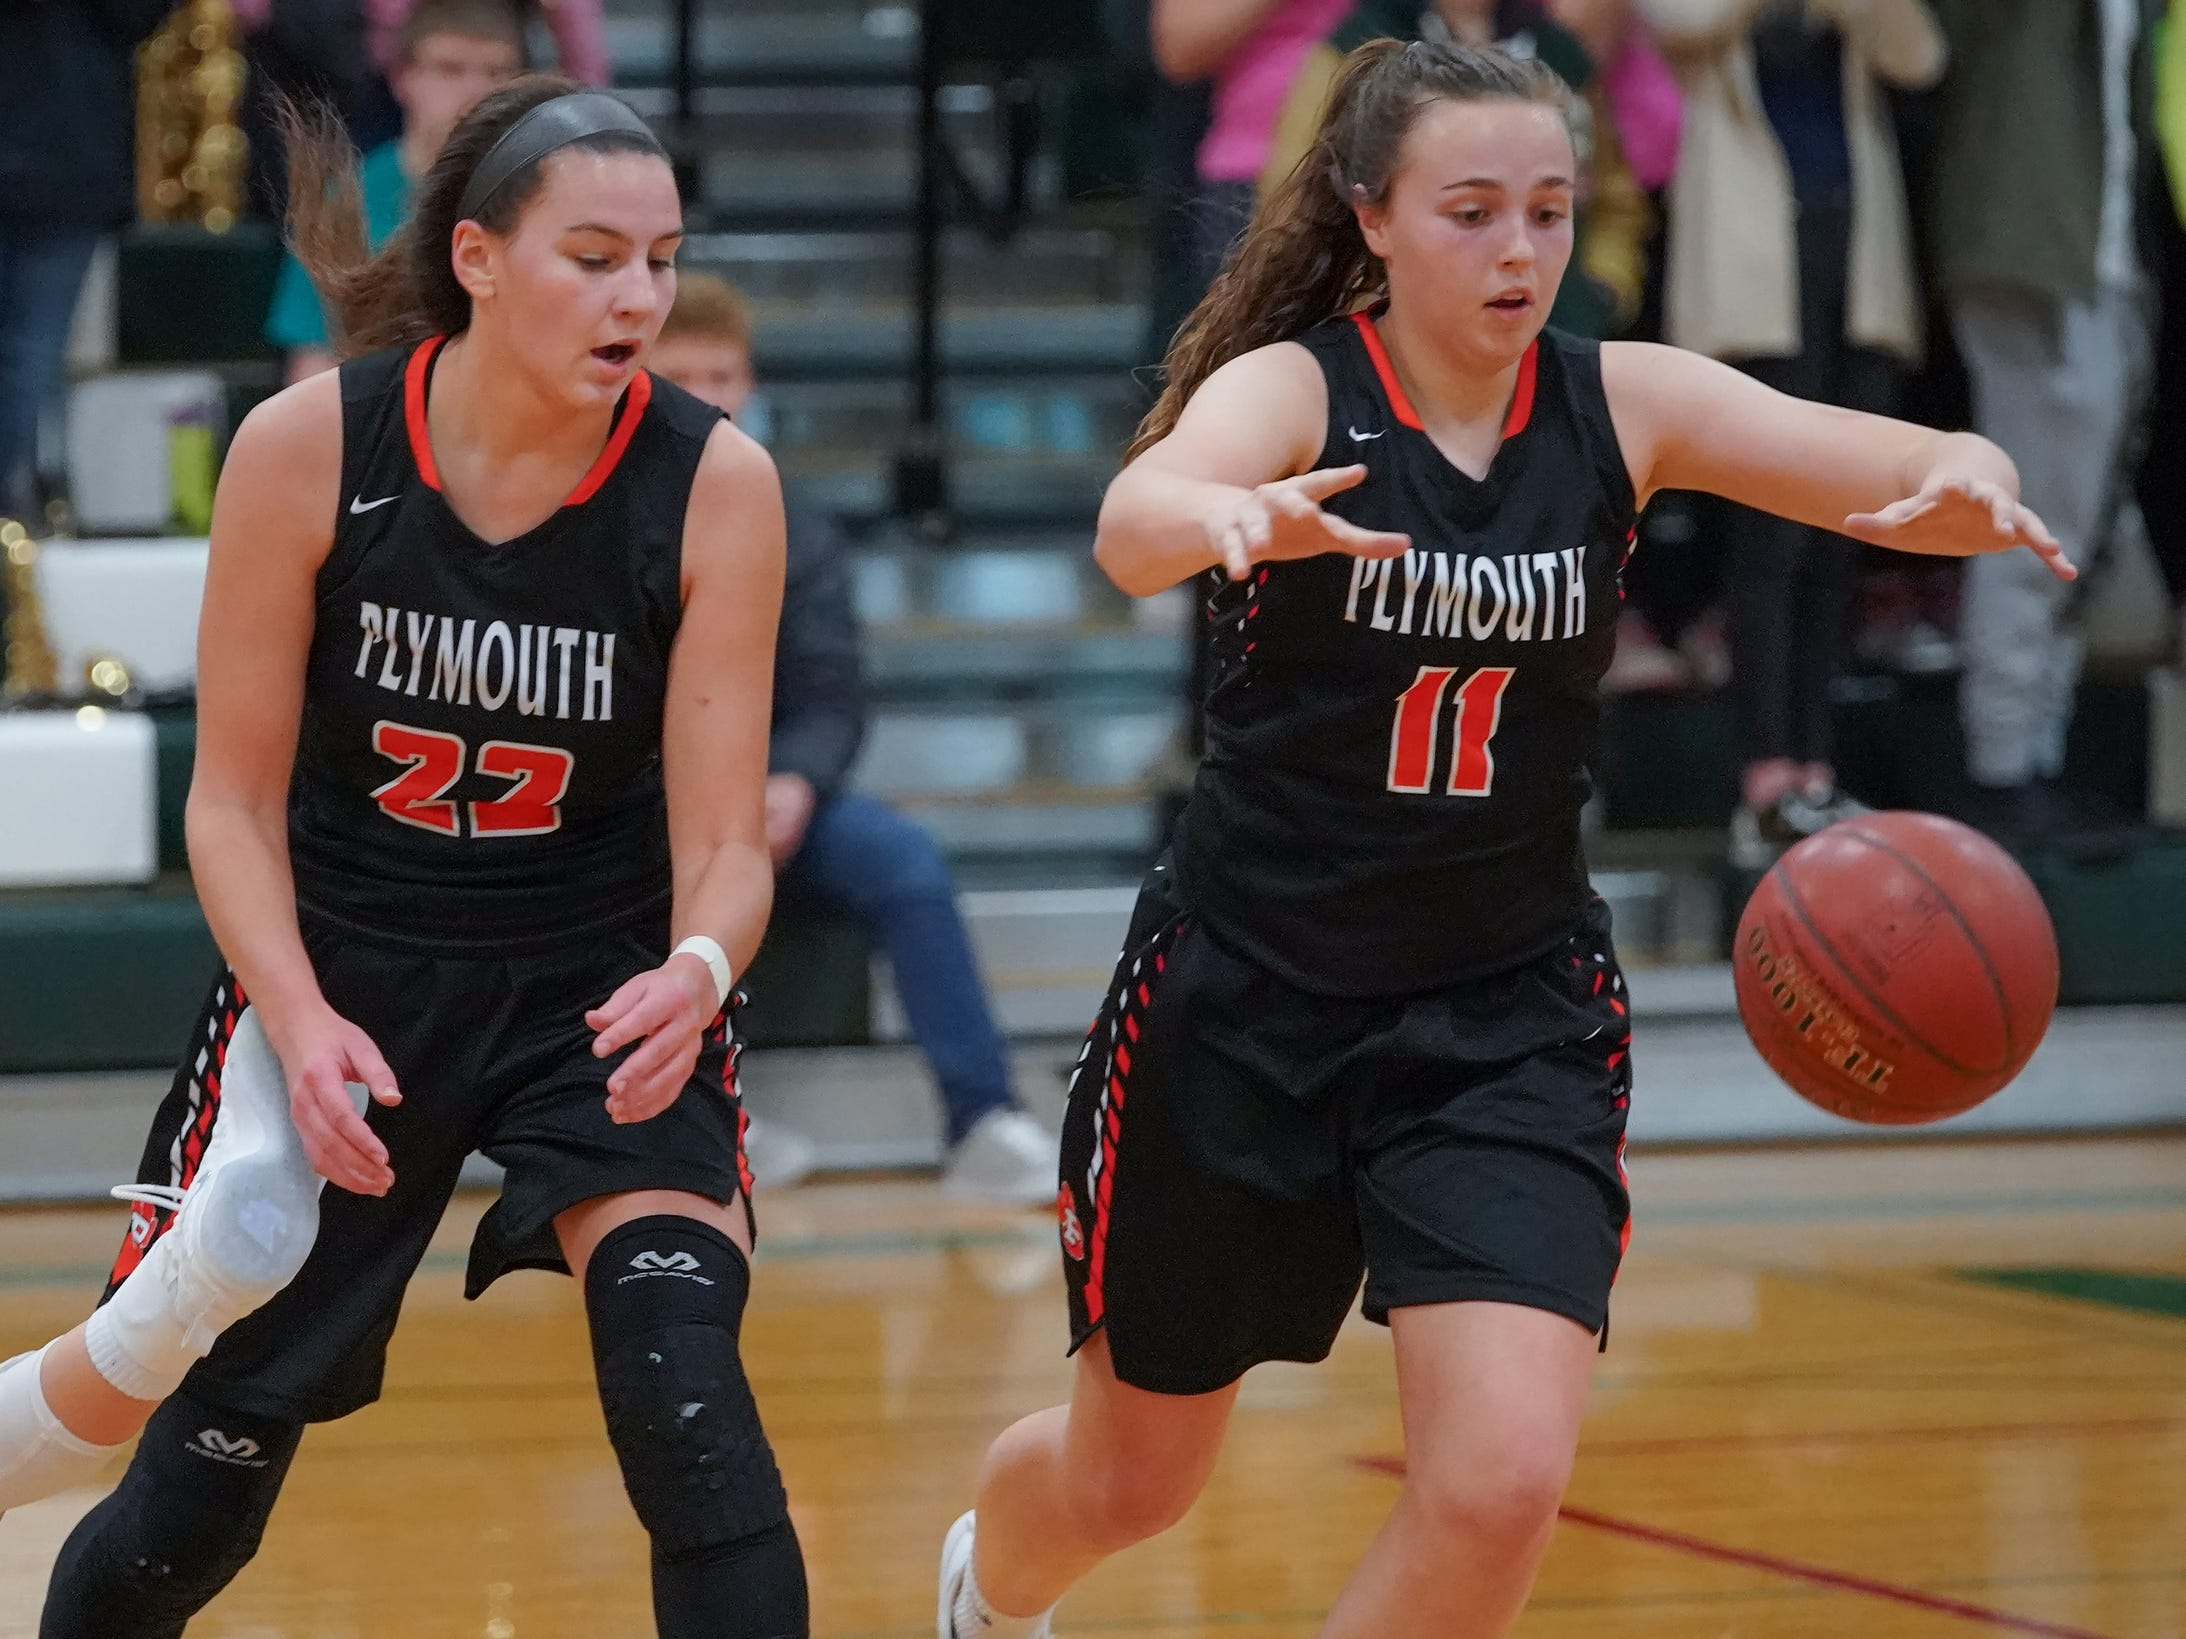 Addie Plate (11) of Plymouth reaches for a loose ball. The Berlin Indians hosted the Plymouth Panthers in an East Central Conference basketball game Thursday evening, December 13, 2018.